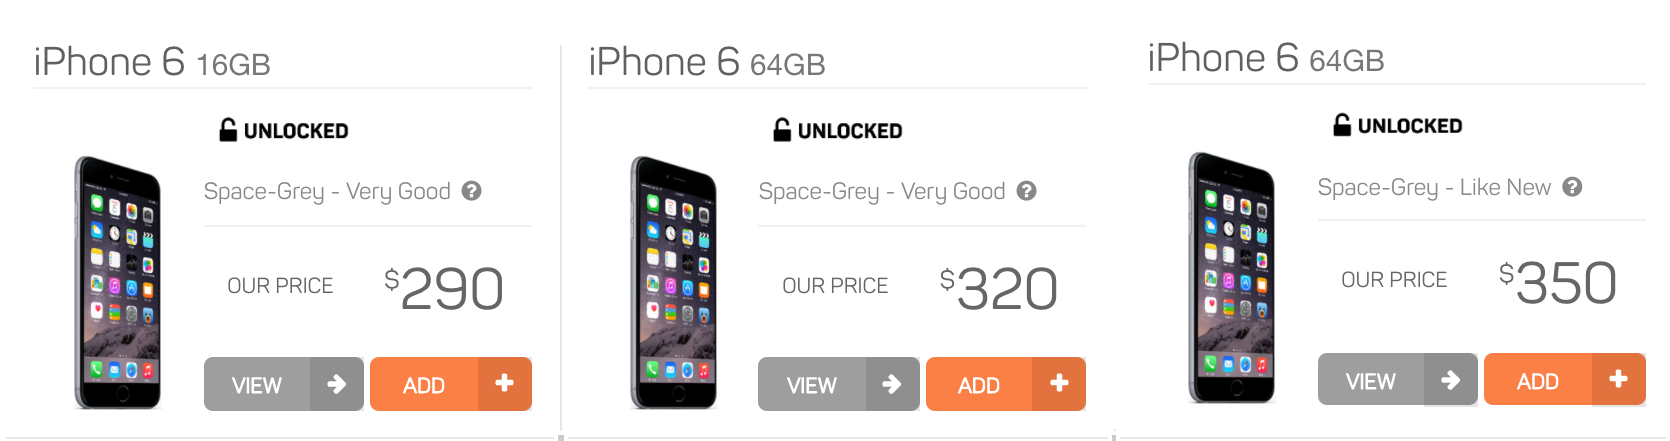 orchard labs used apple iphone marketplace - iphone 6 choices